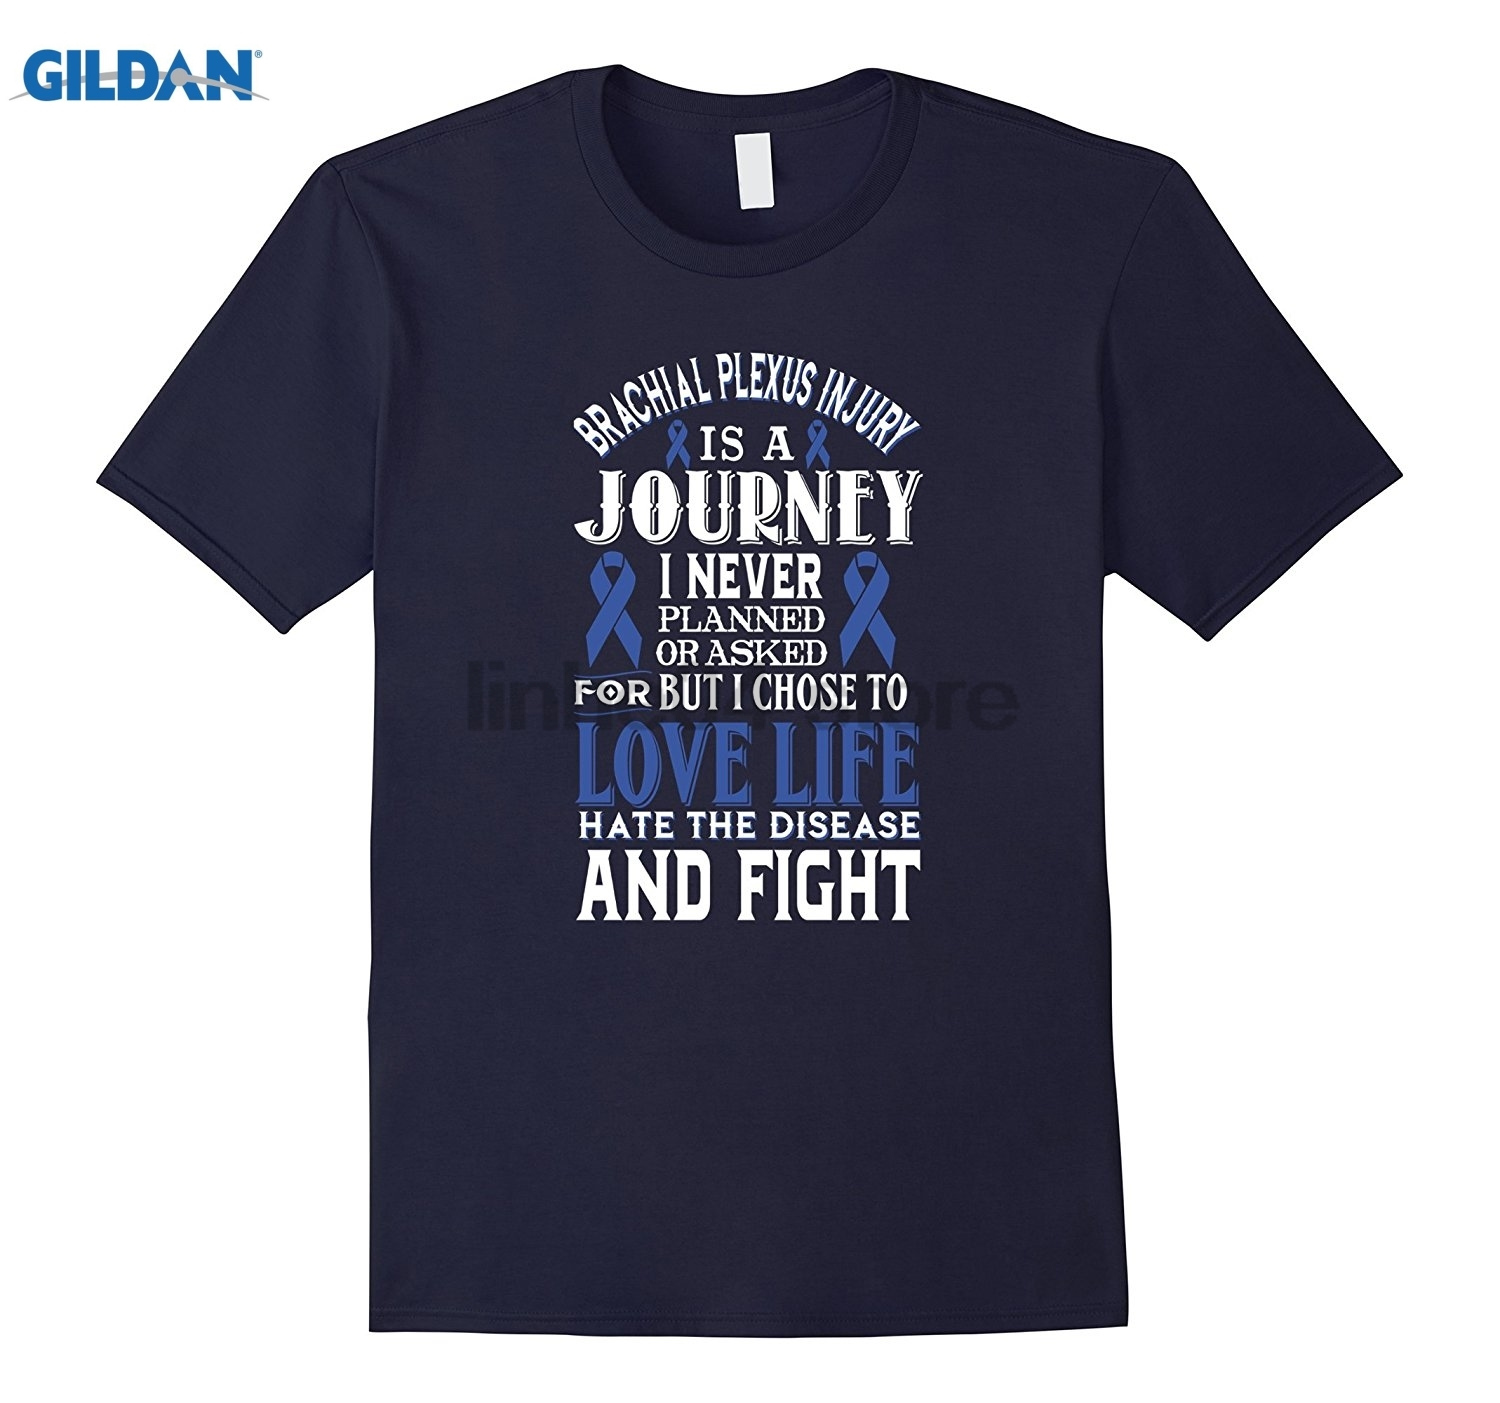 GILDAN Brachial Plexus Injury Awareness T-shirt dress T-shirt glasses Womens T-shirt